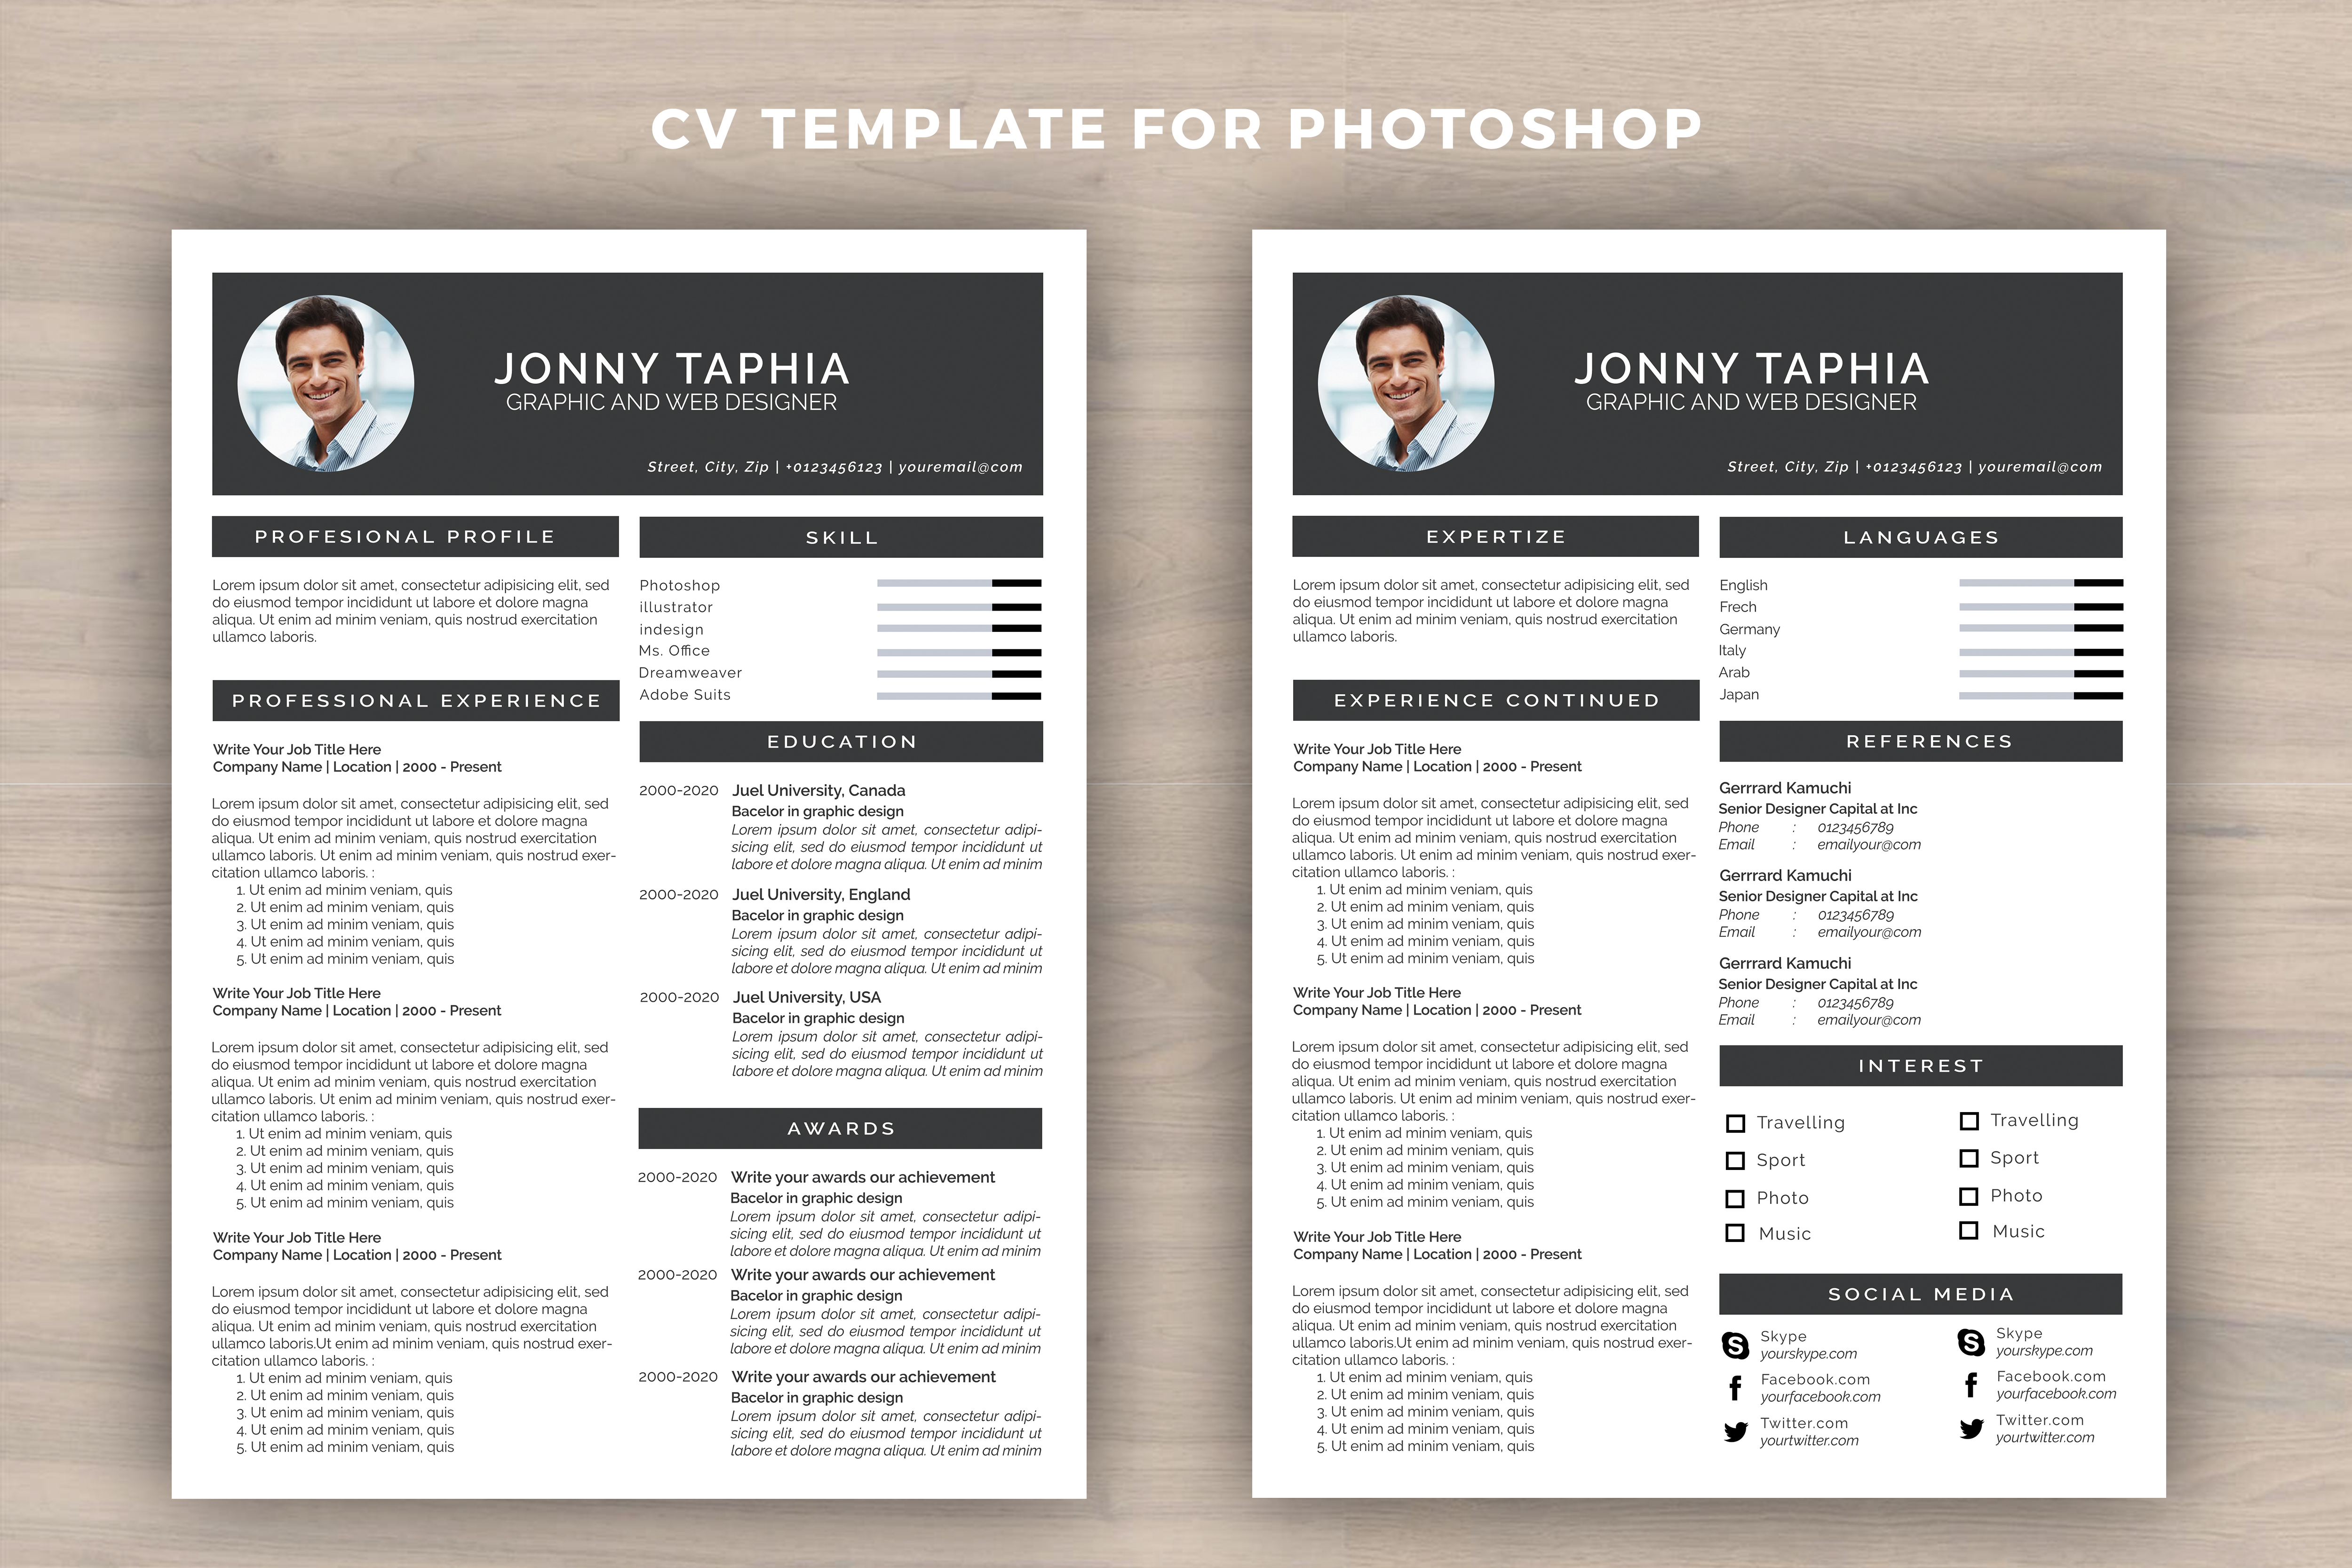 Resume template for photoshop by utopia design bundles resume template for photoshop example image 2 yelopaper Choice Image